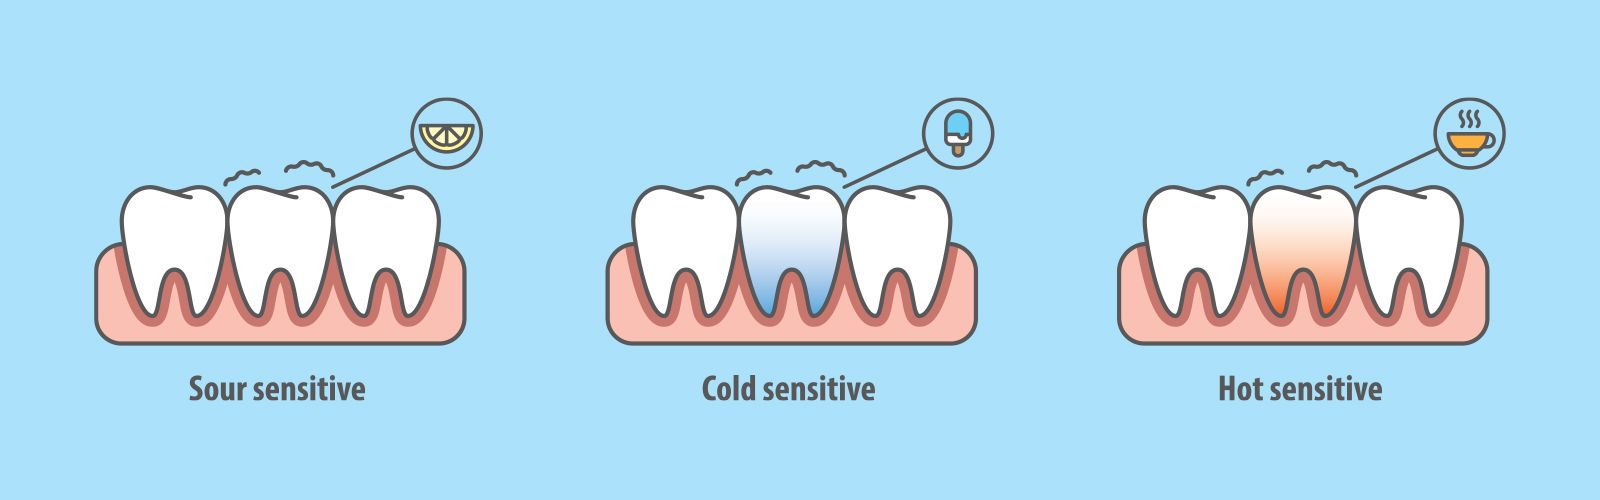 Illustration of sensitive teeth and causes